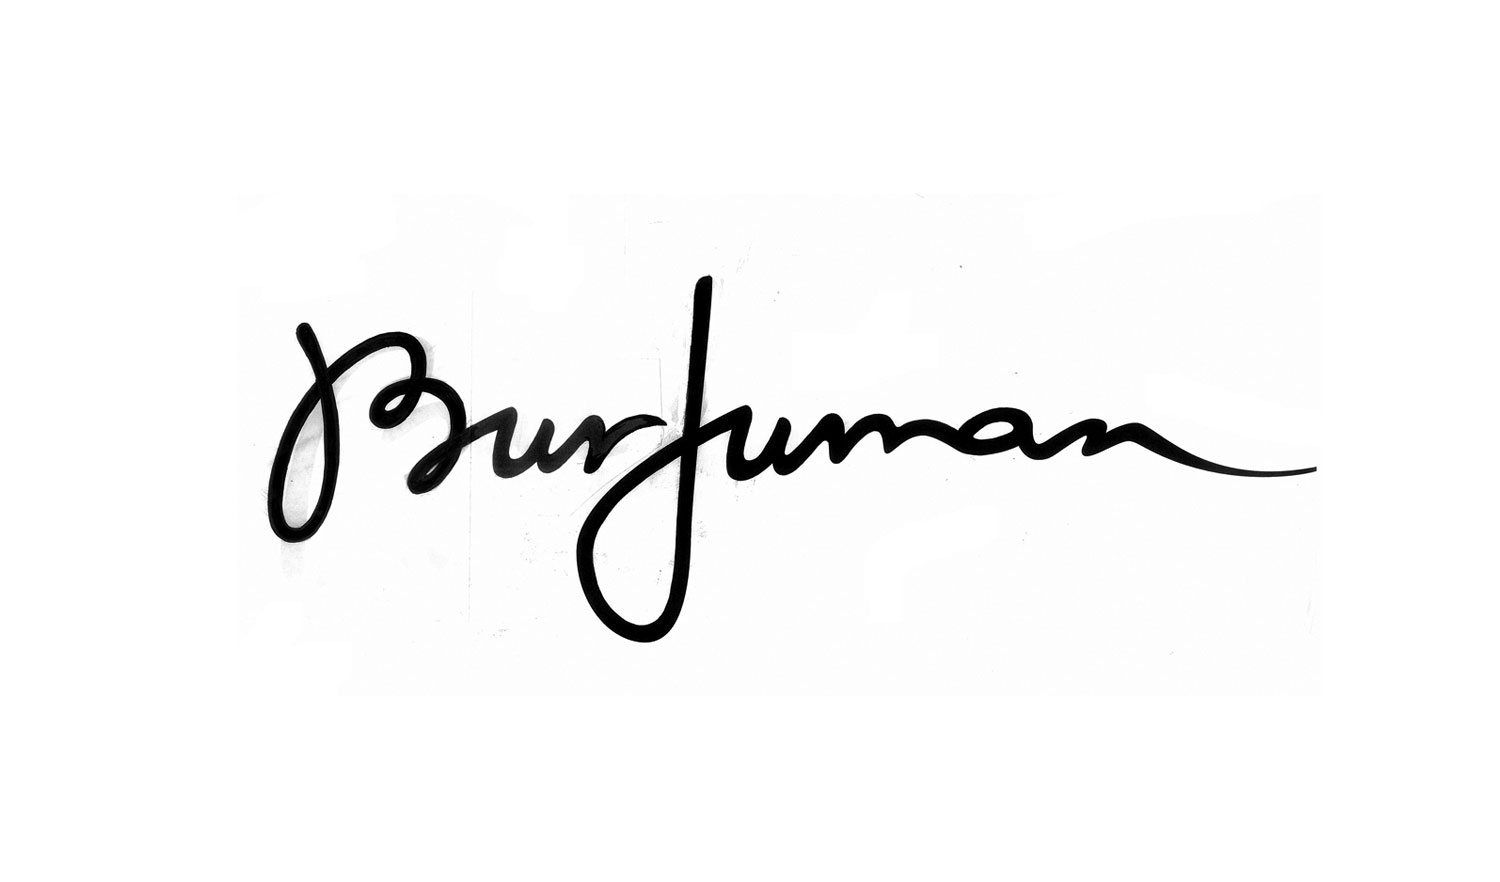 BurJuman-Evolution-of-Logos-07.jpg